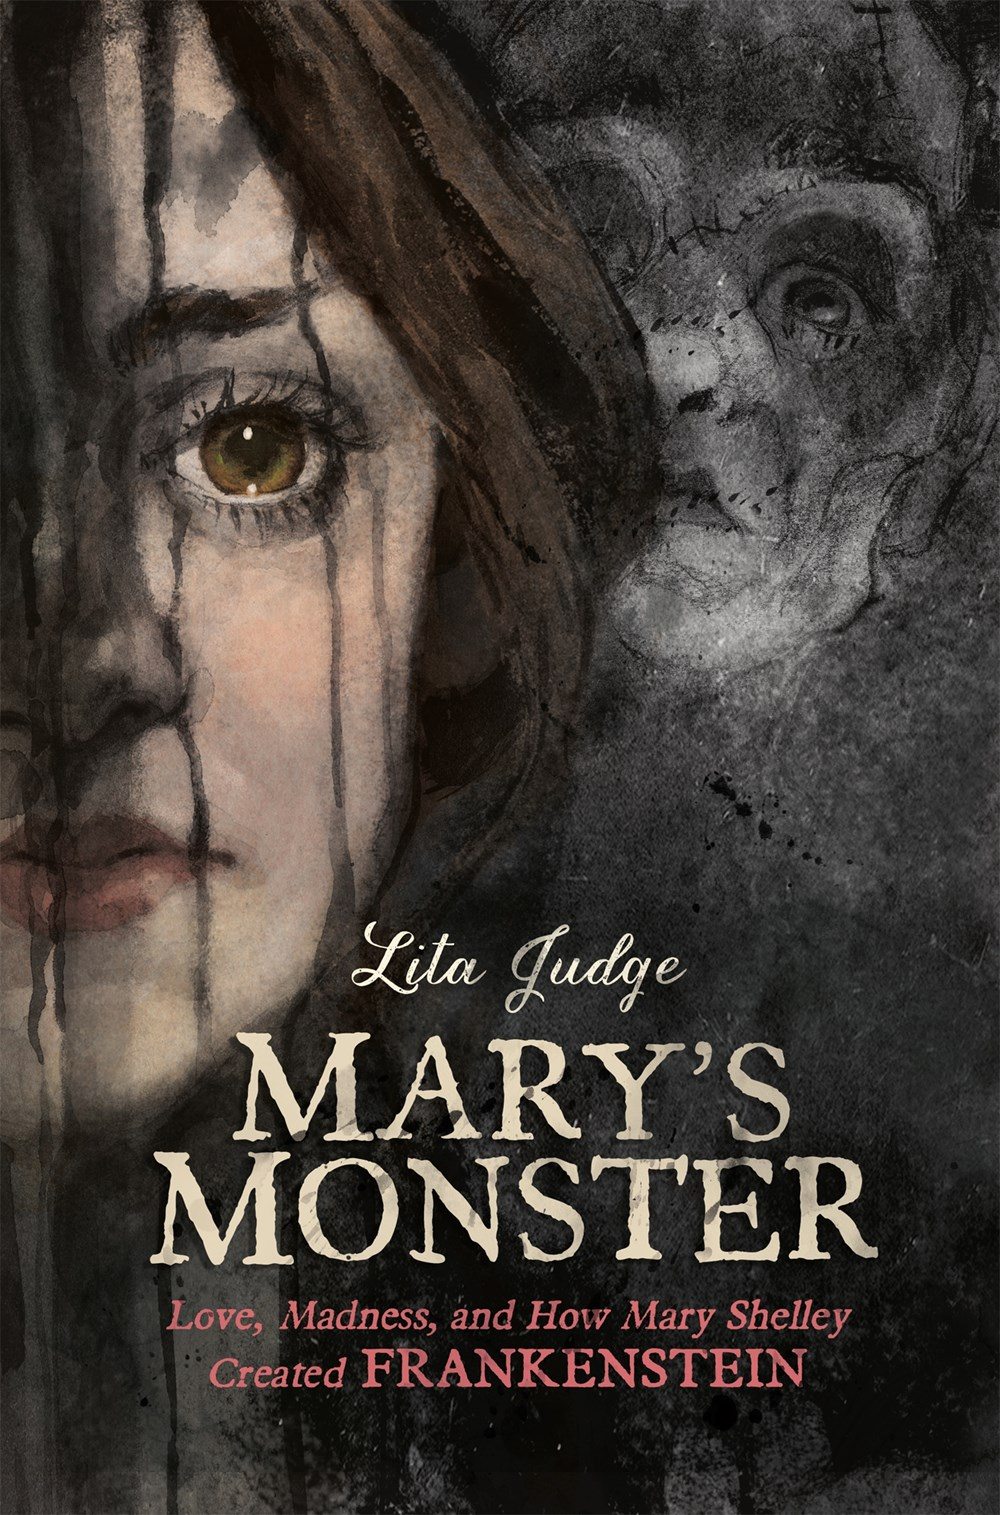 Mary's Monster: Love, Madness, and How Mary Shelley Created Frankenstein, by Lita Judge